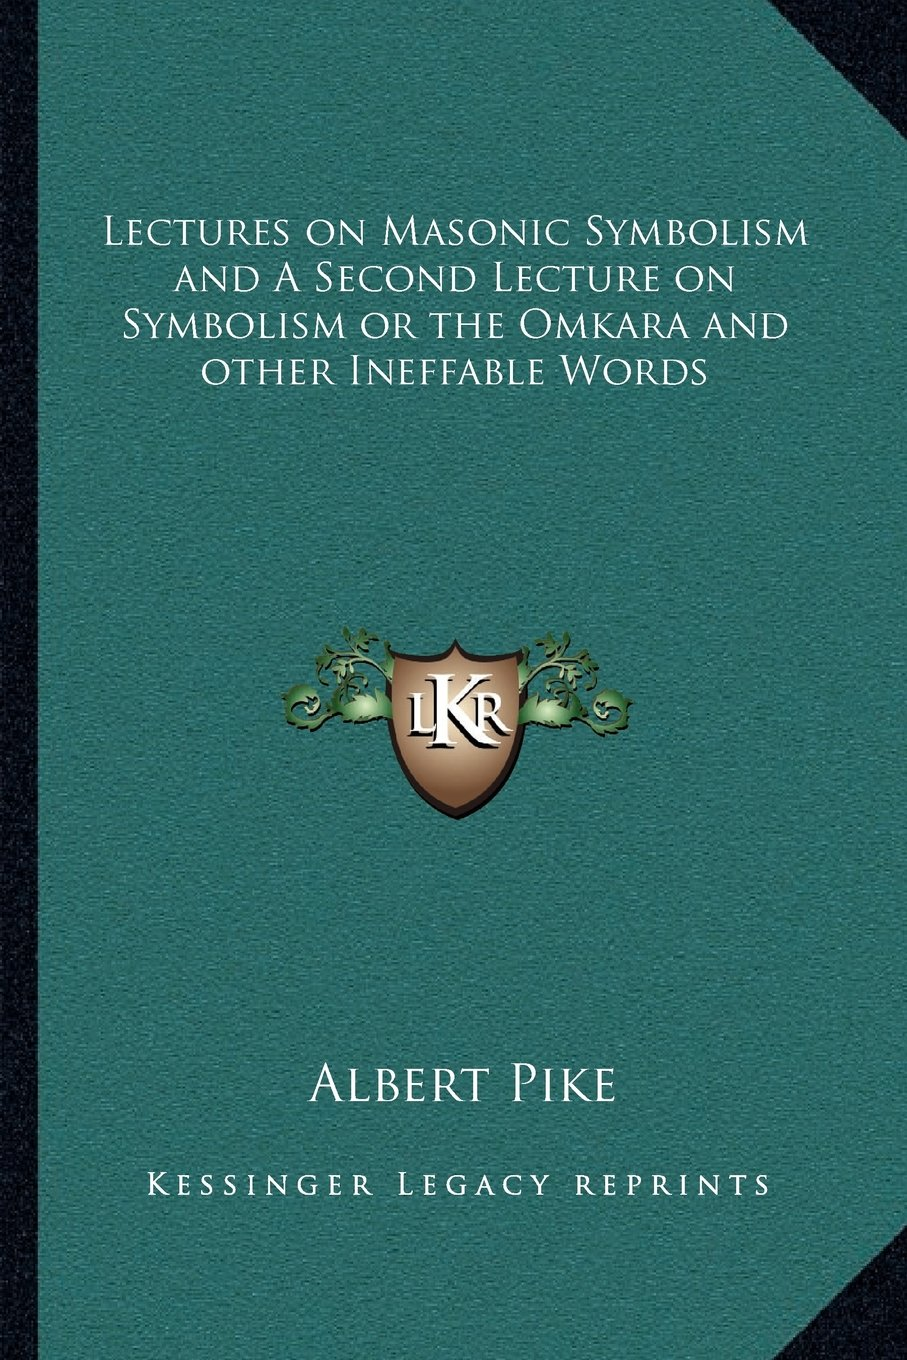 Download Lectures on Masonic Symbolism and A Second Lecture on Symbolism or the Omkara and other Ineffable Words PDF